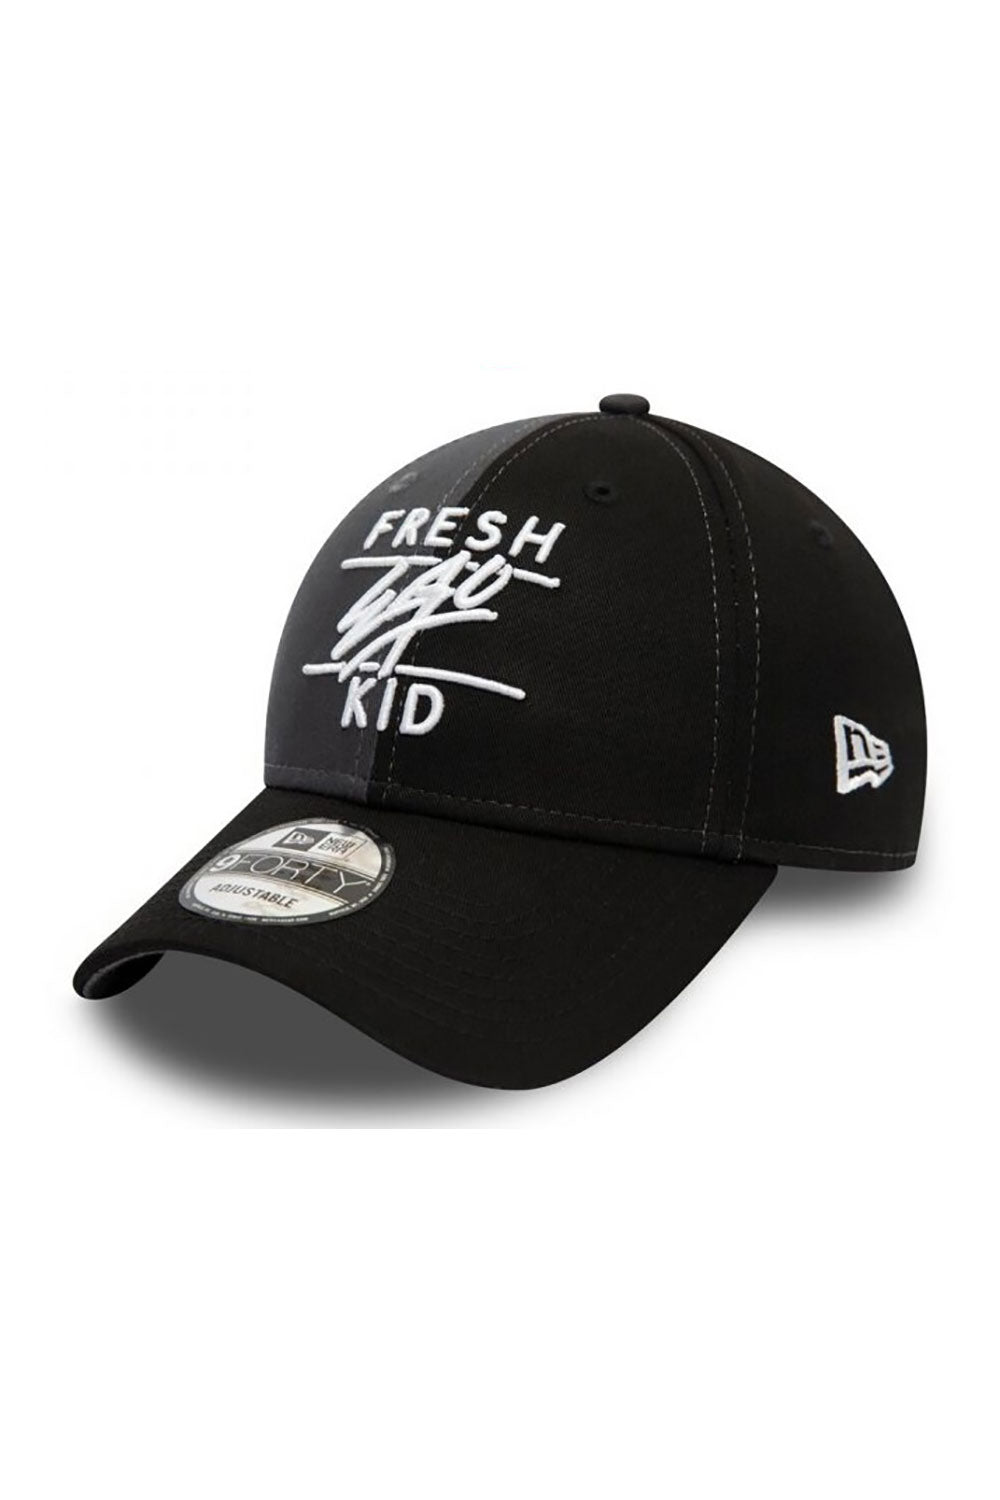 Fresh Ego Kid 9Forty Polo Cap - Grey / Black